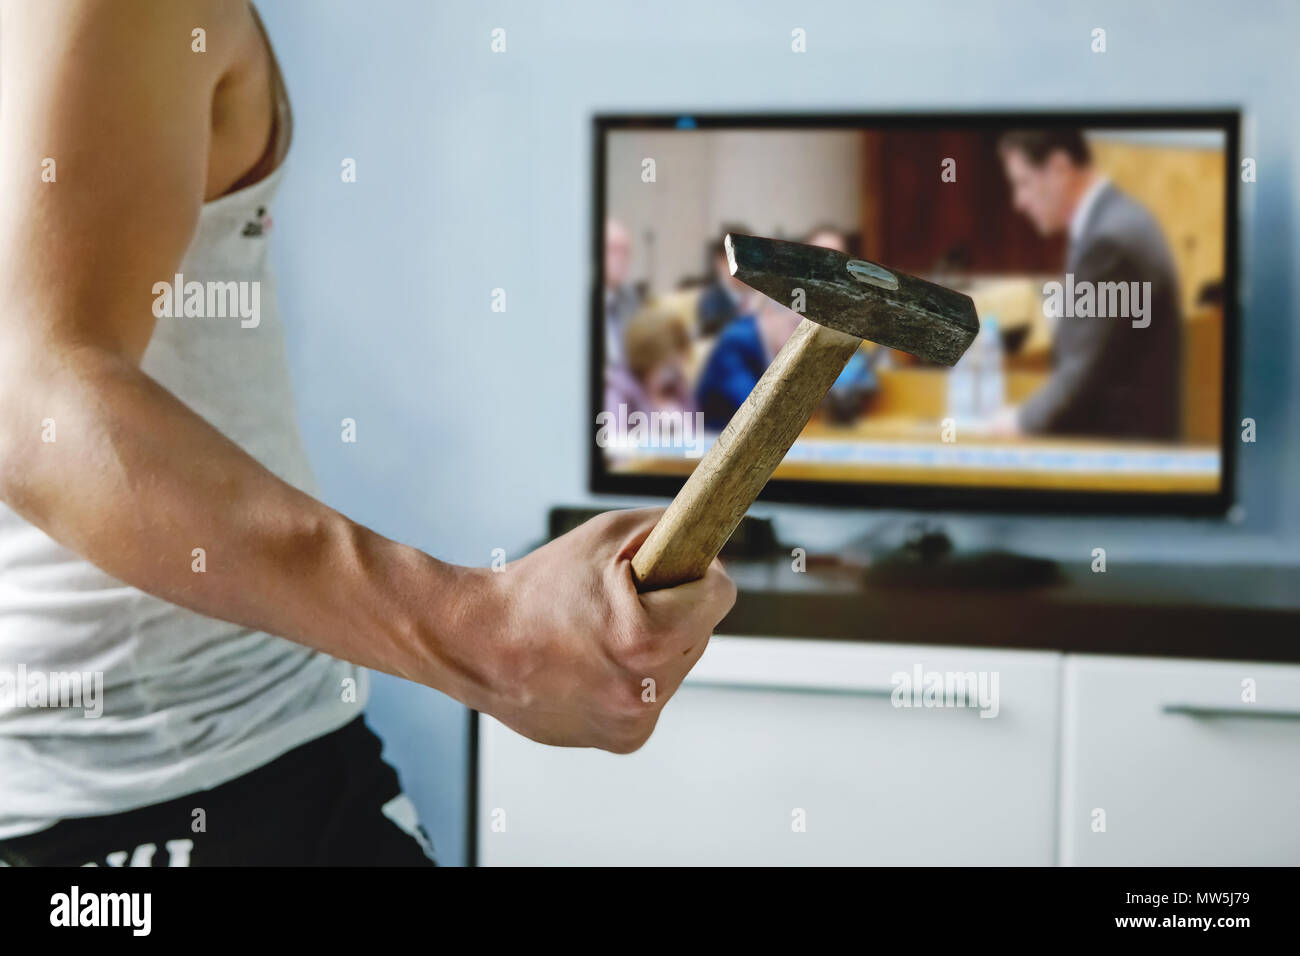 A psychopath wants to crash the TV with a hammer. fake news report. Man breaks TV screen. Fatigue from bad news. The evil guy is watching political ne Stock Photo